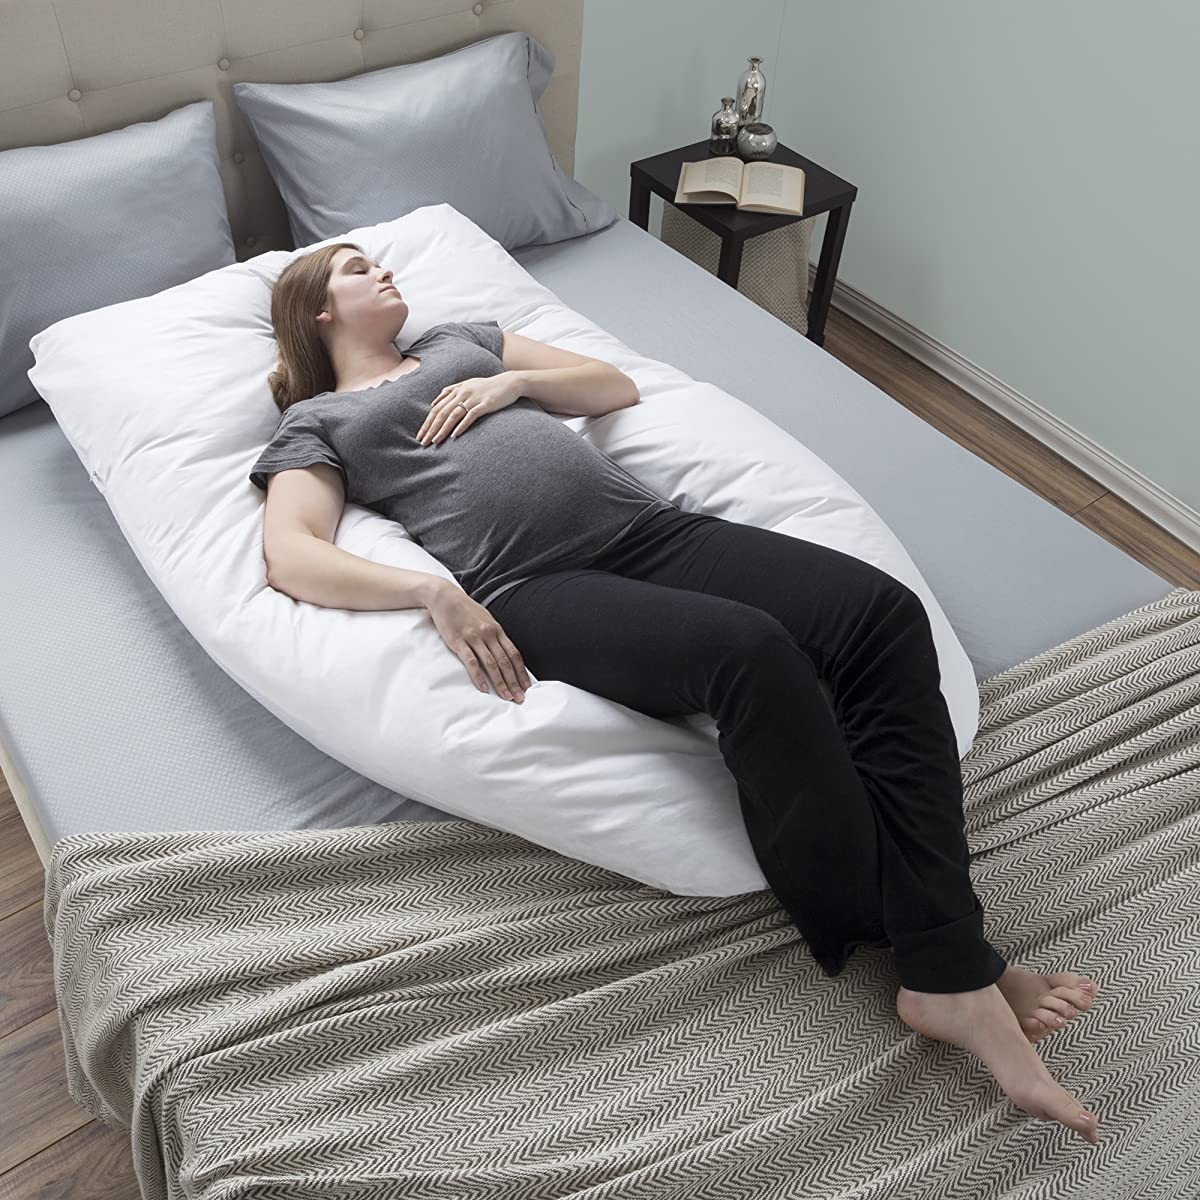 Pregnancy Pillow Full Body Maternity Pillow W Contoured